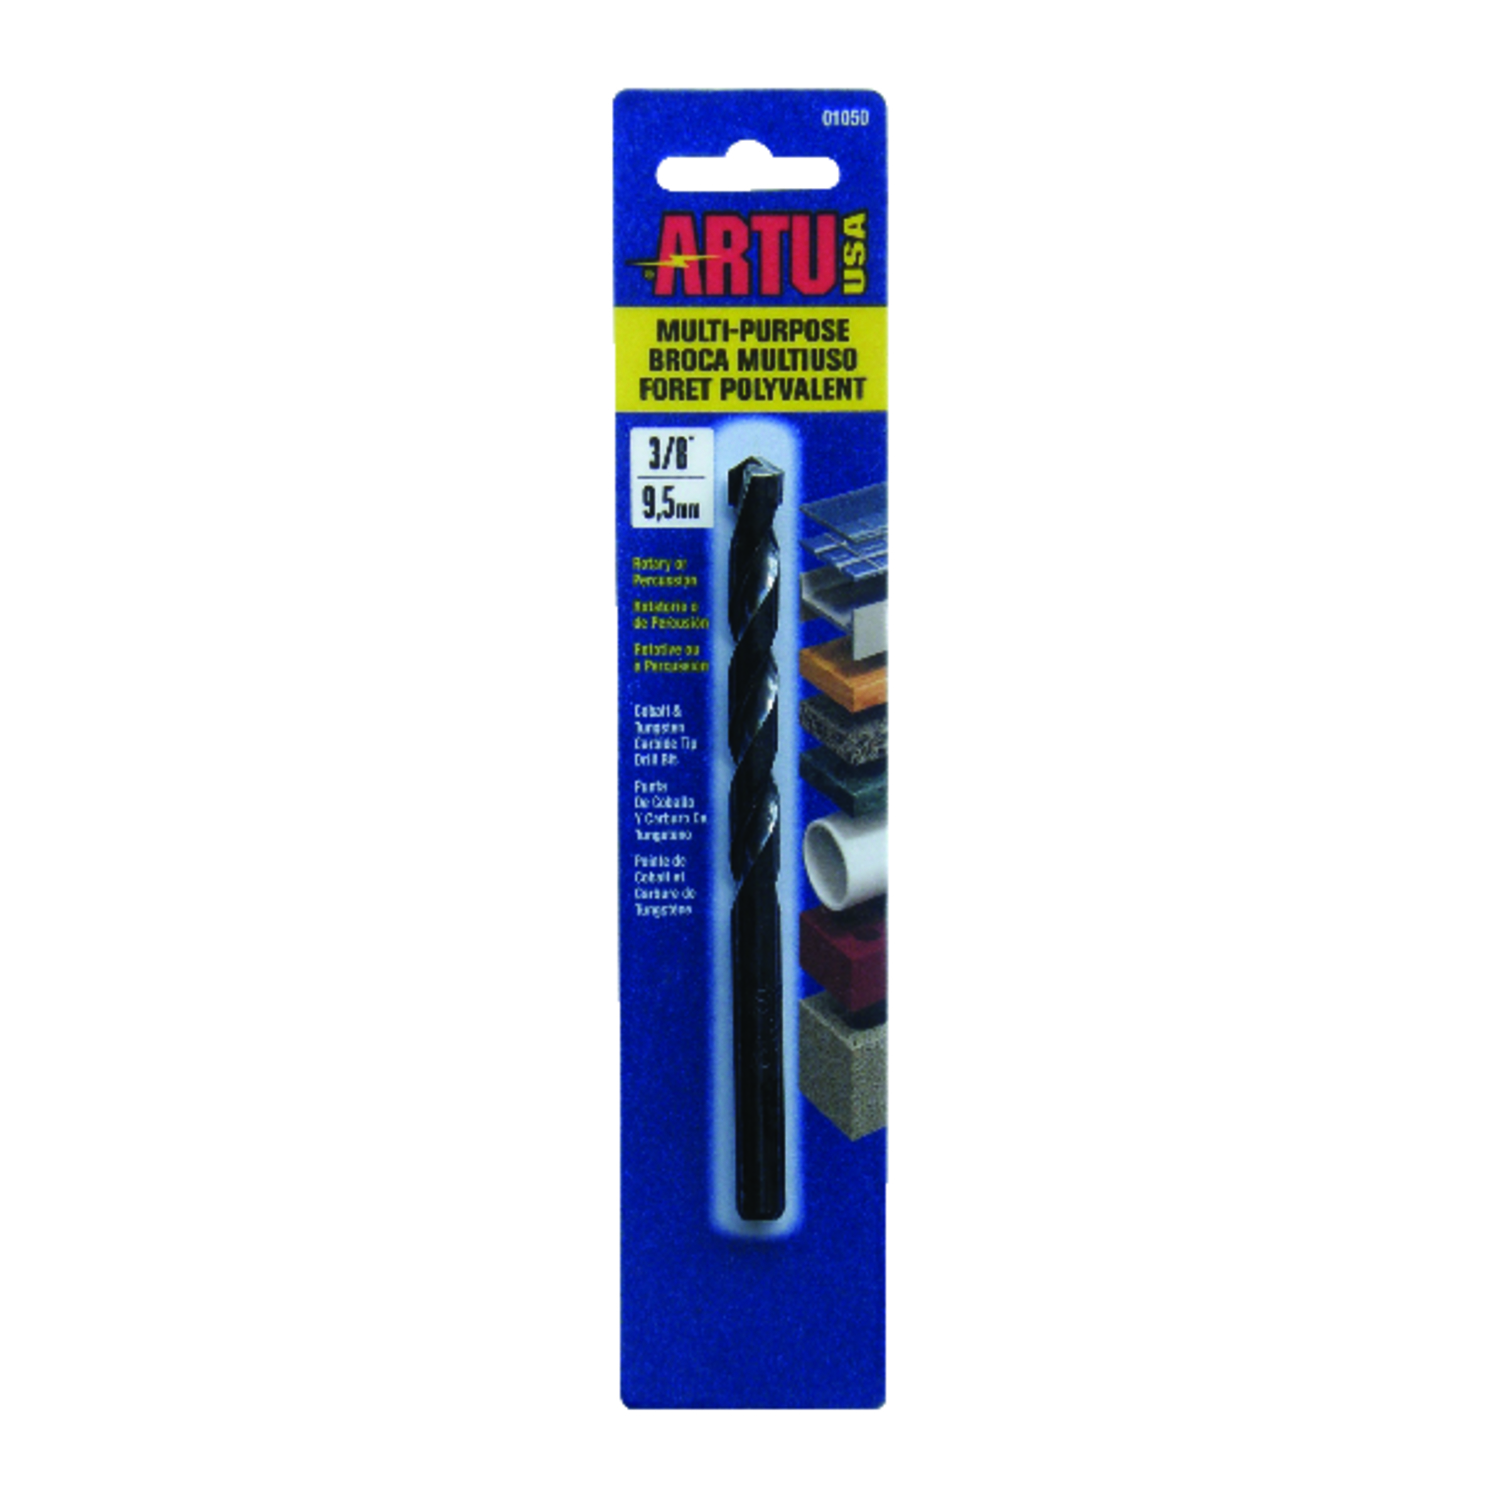 ARTU  3/8 in. Dia. x 5-1/4 in. L Tungsten Carbide Tipped  3/8 in. Round Shank  1 pc. General Purpose